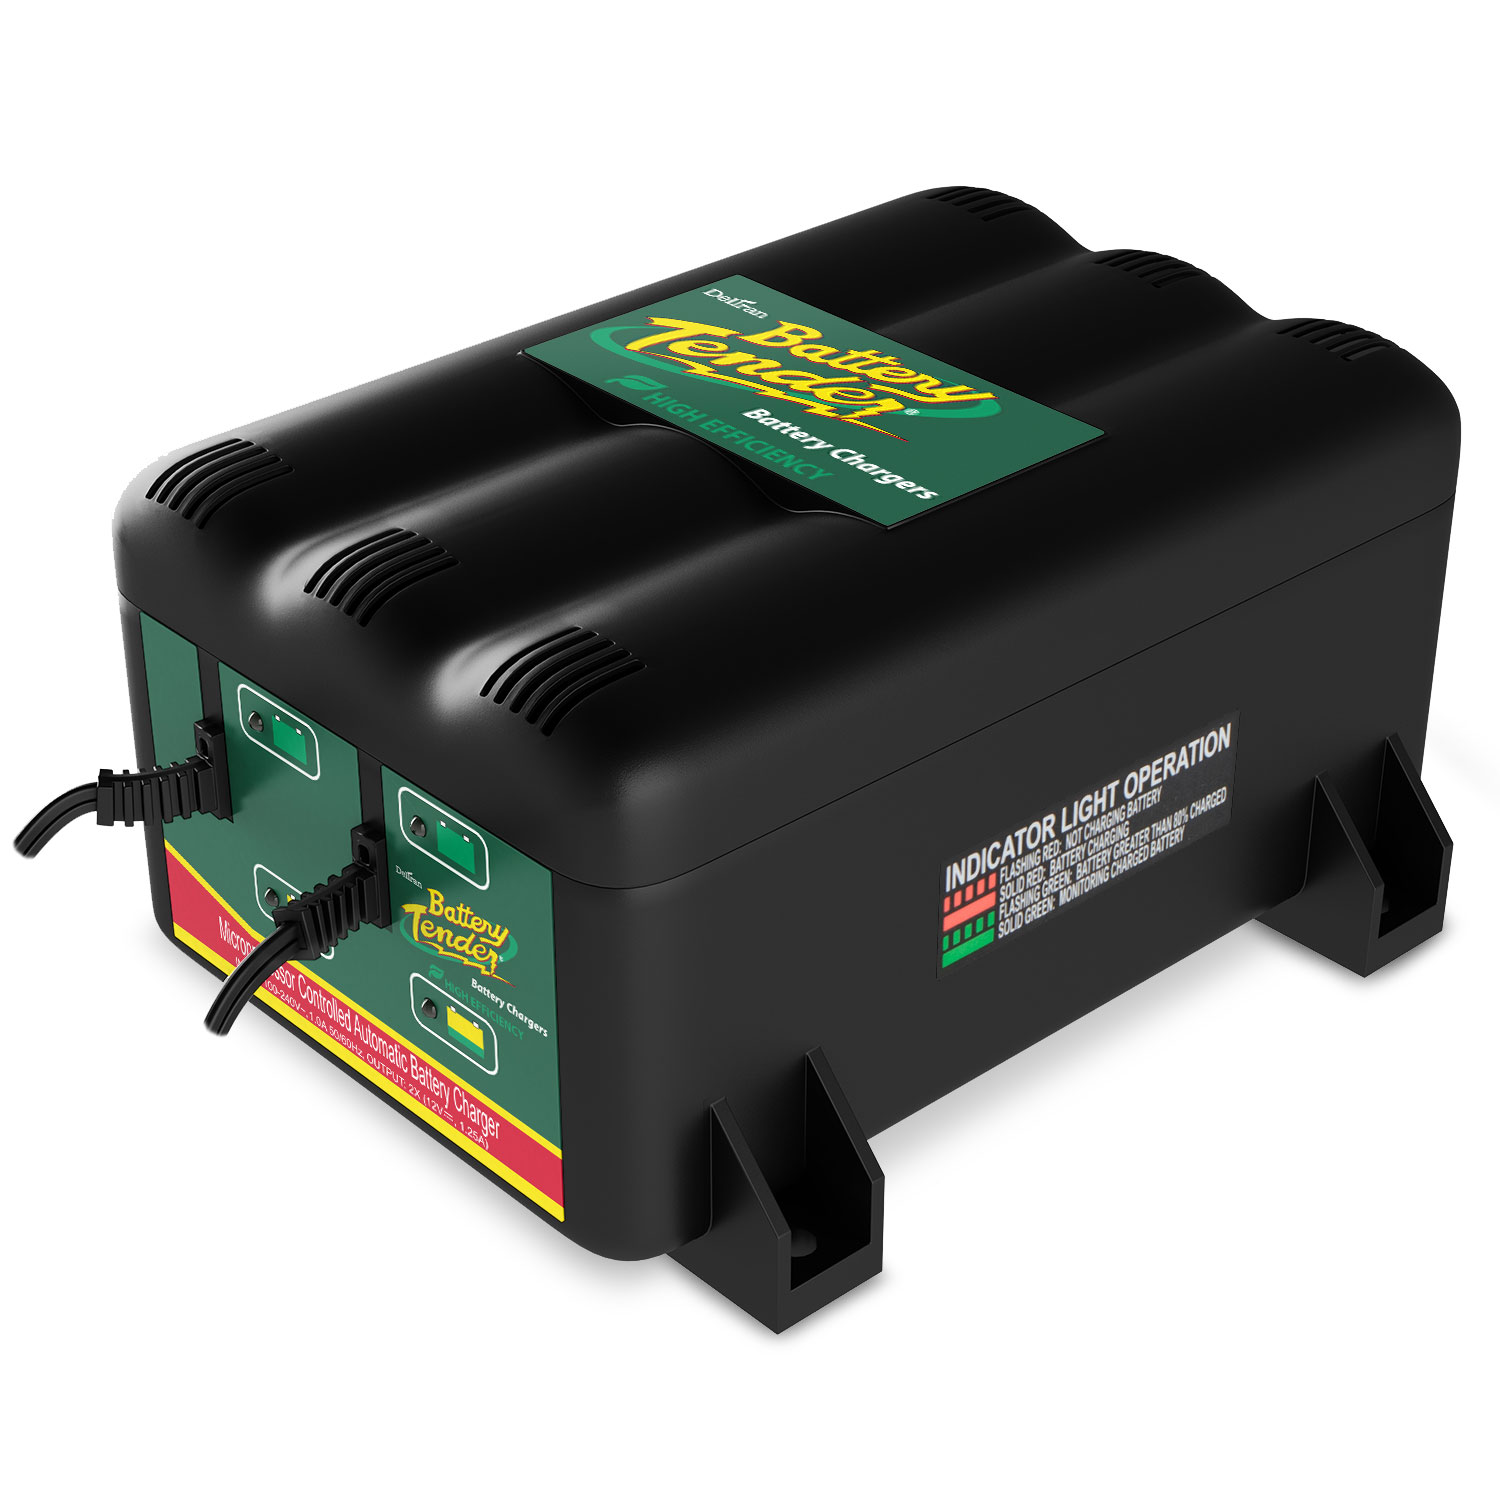 Battery Tender 2-Bank Battery Management System by Battery Tender